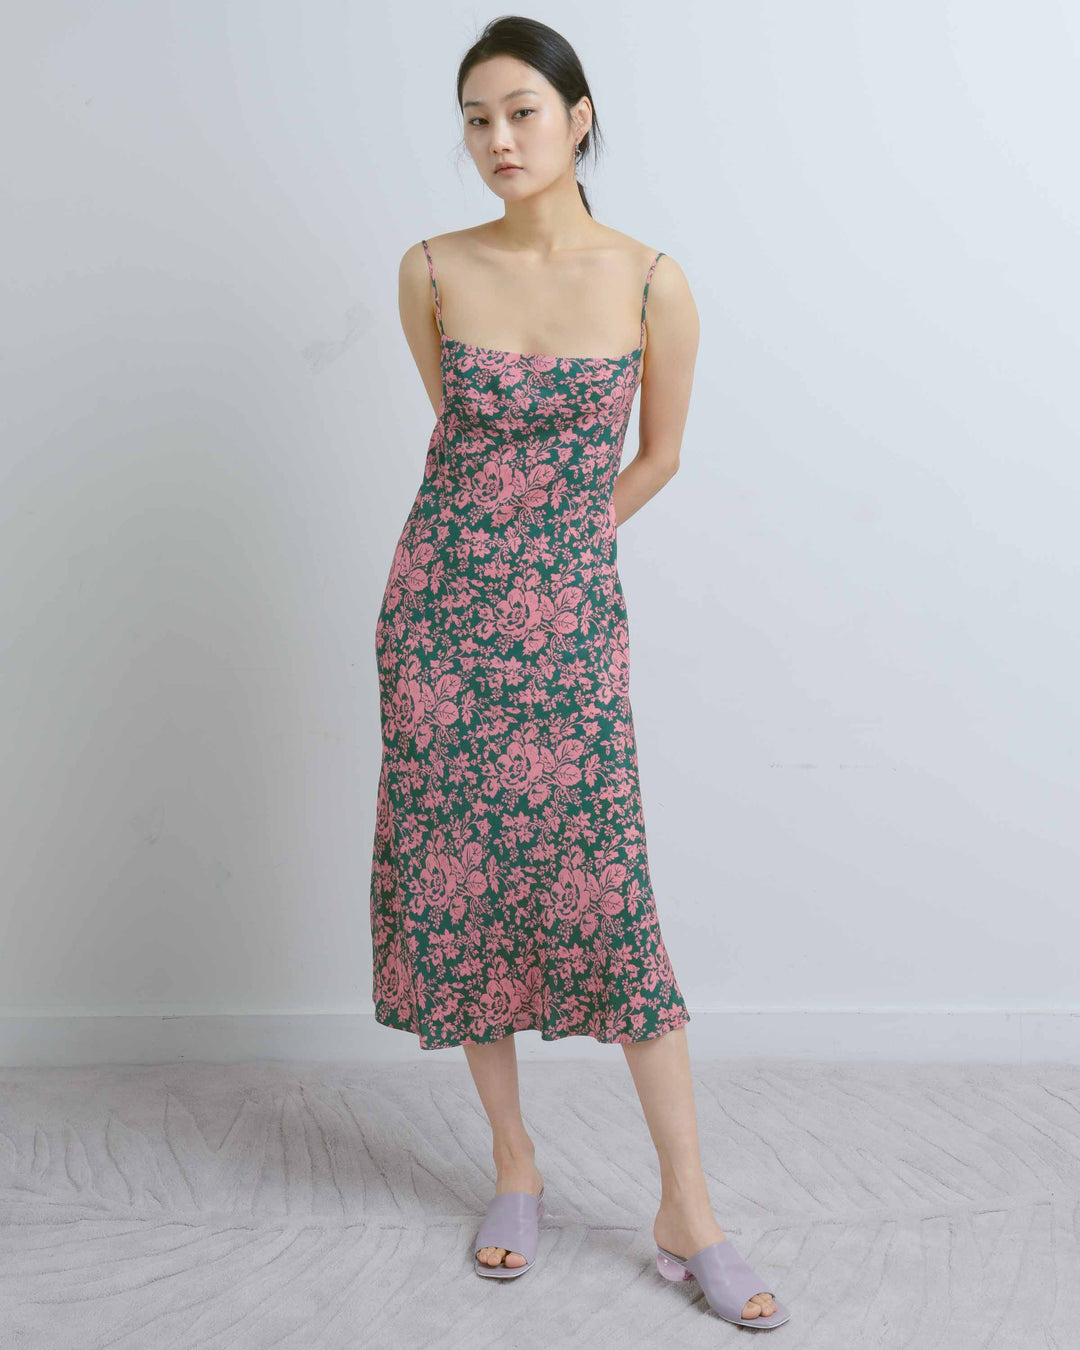 Pink & Green Tea Length Camellia Dress